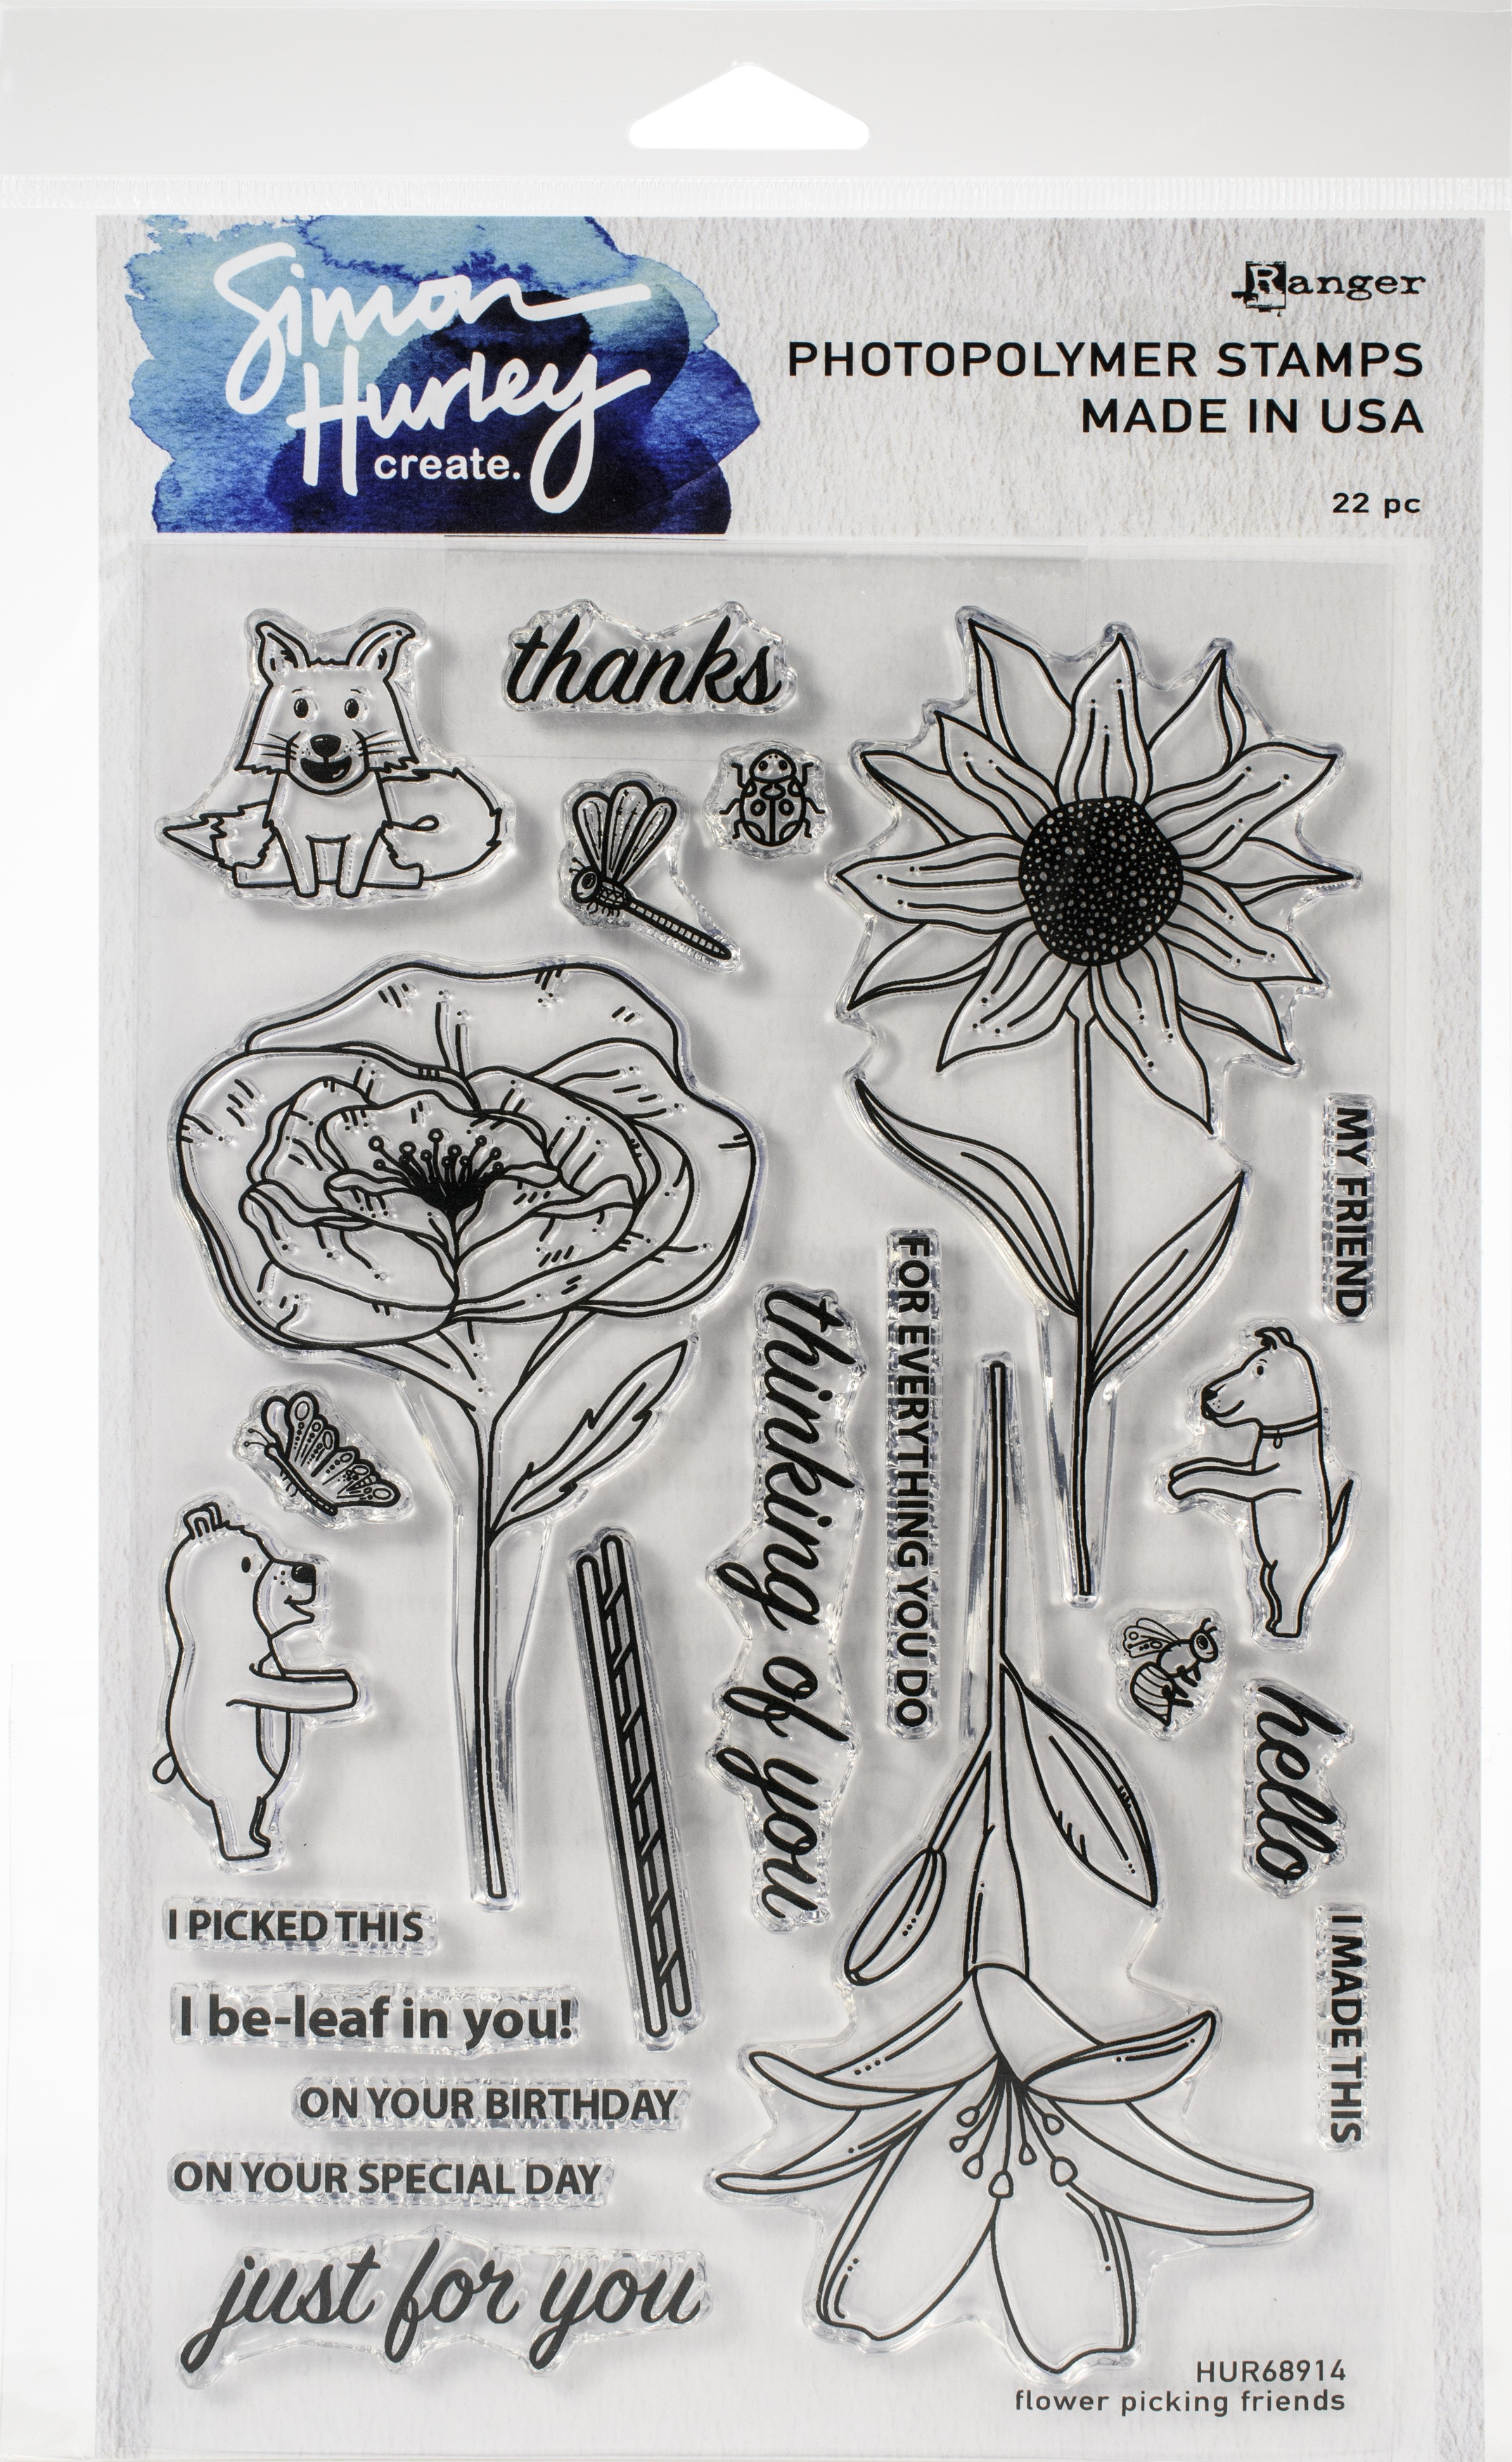 Simon Hurley create. Cling Stamps 6X9-Flower Picking Friends